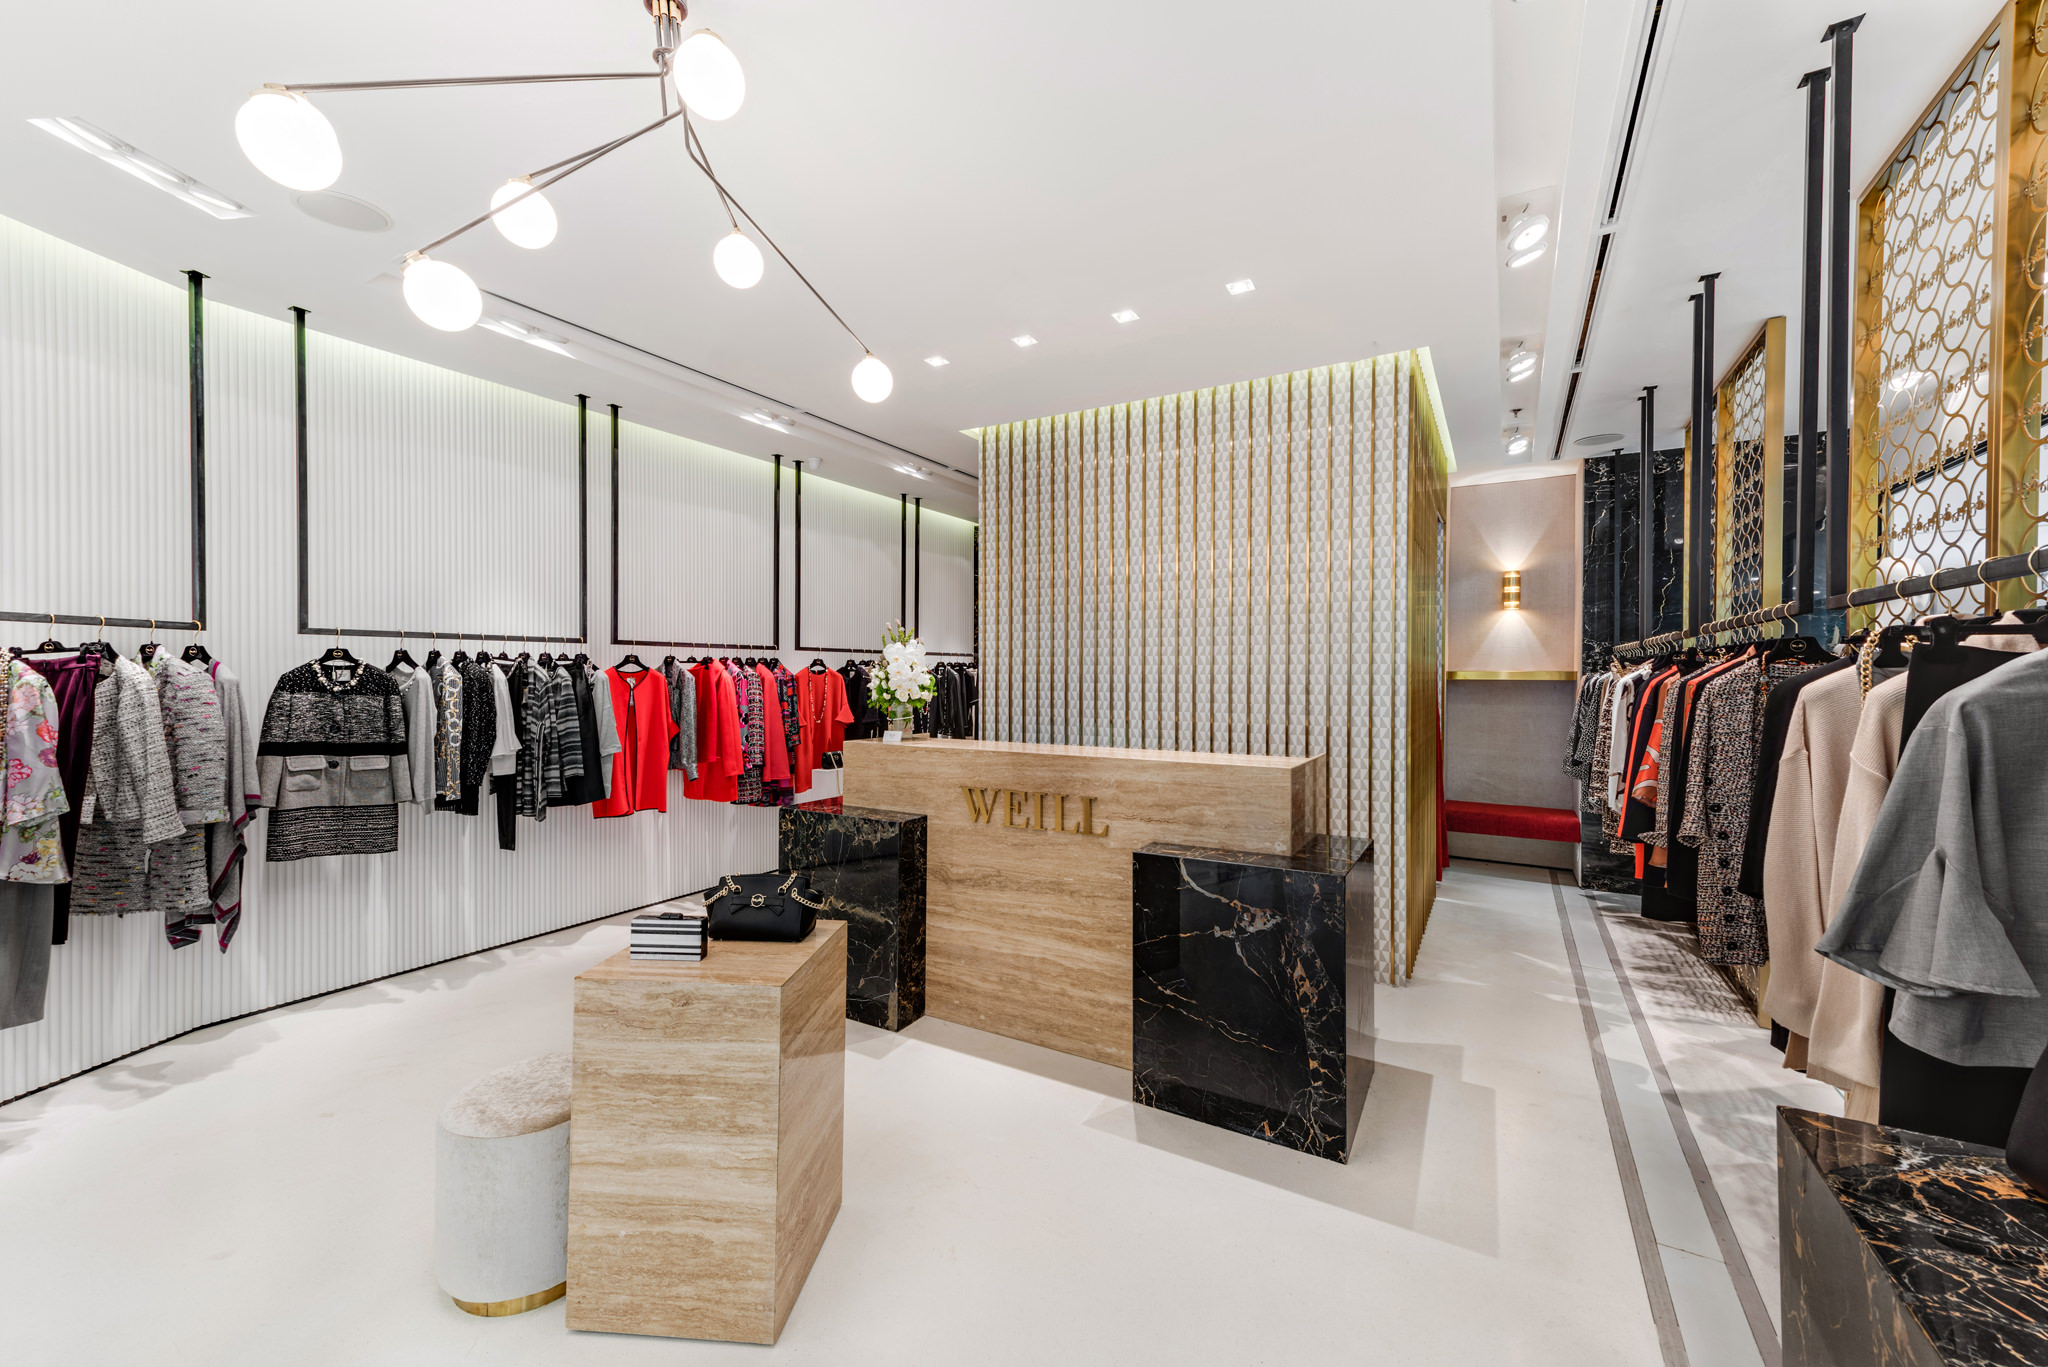 20160801 - Weill - HCM - Commercial - Interior - Store - Retouch 0006.jpg